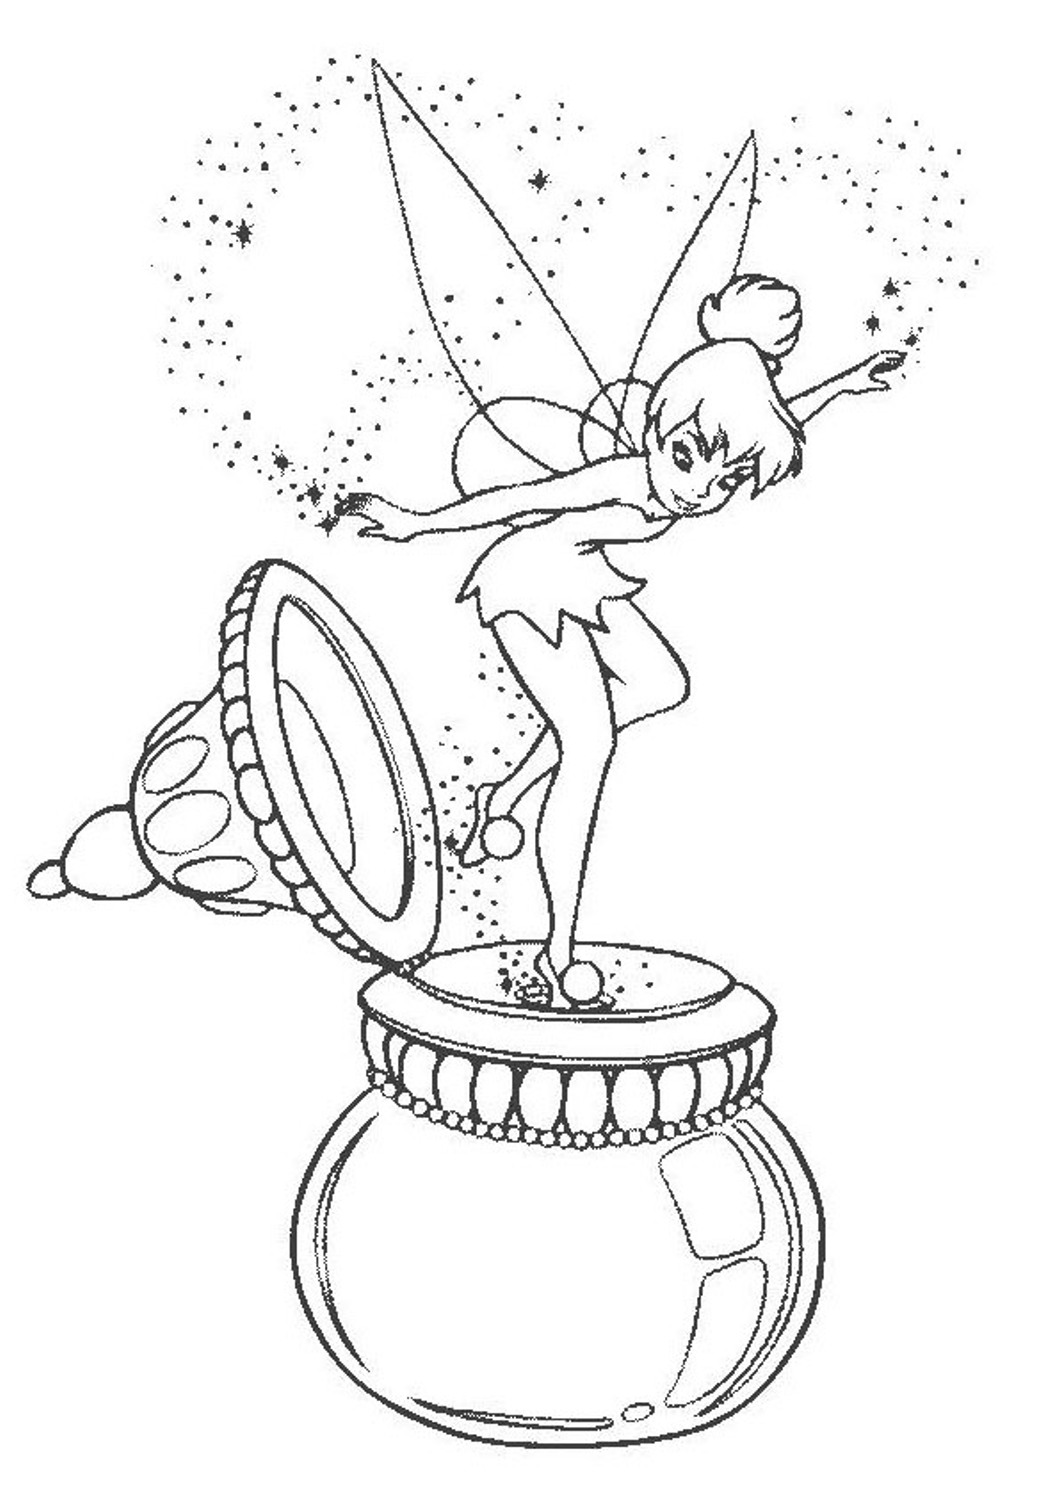 tinkerbell coloring sheets coloring pages tinkerbell coloring pages and clip art sheets coloring tinkerbell